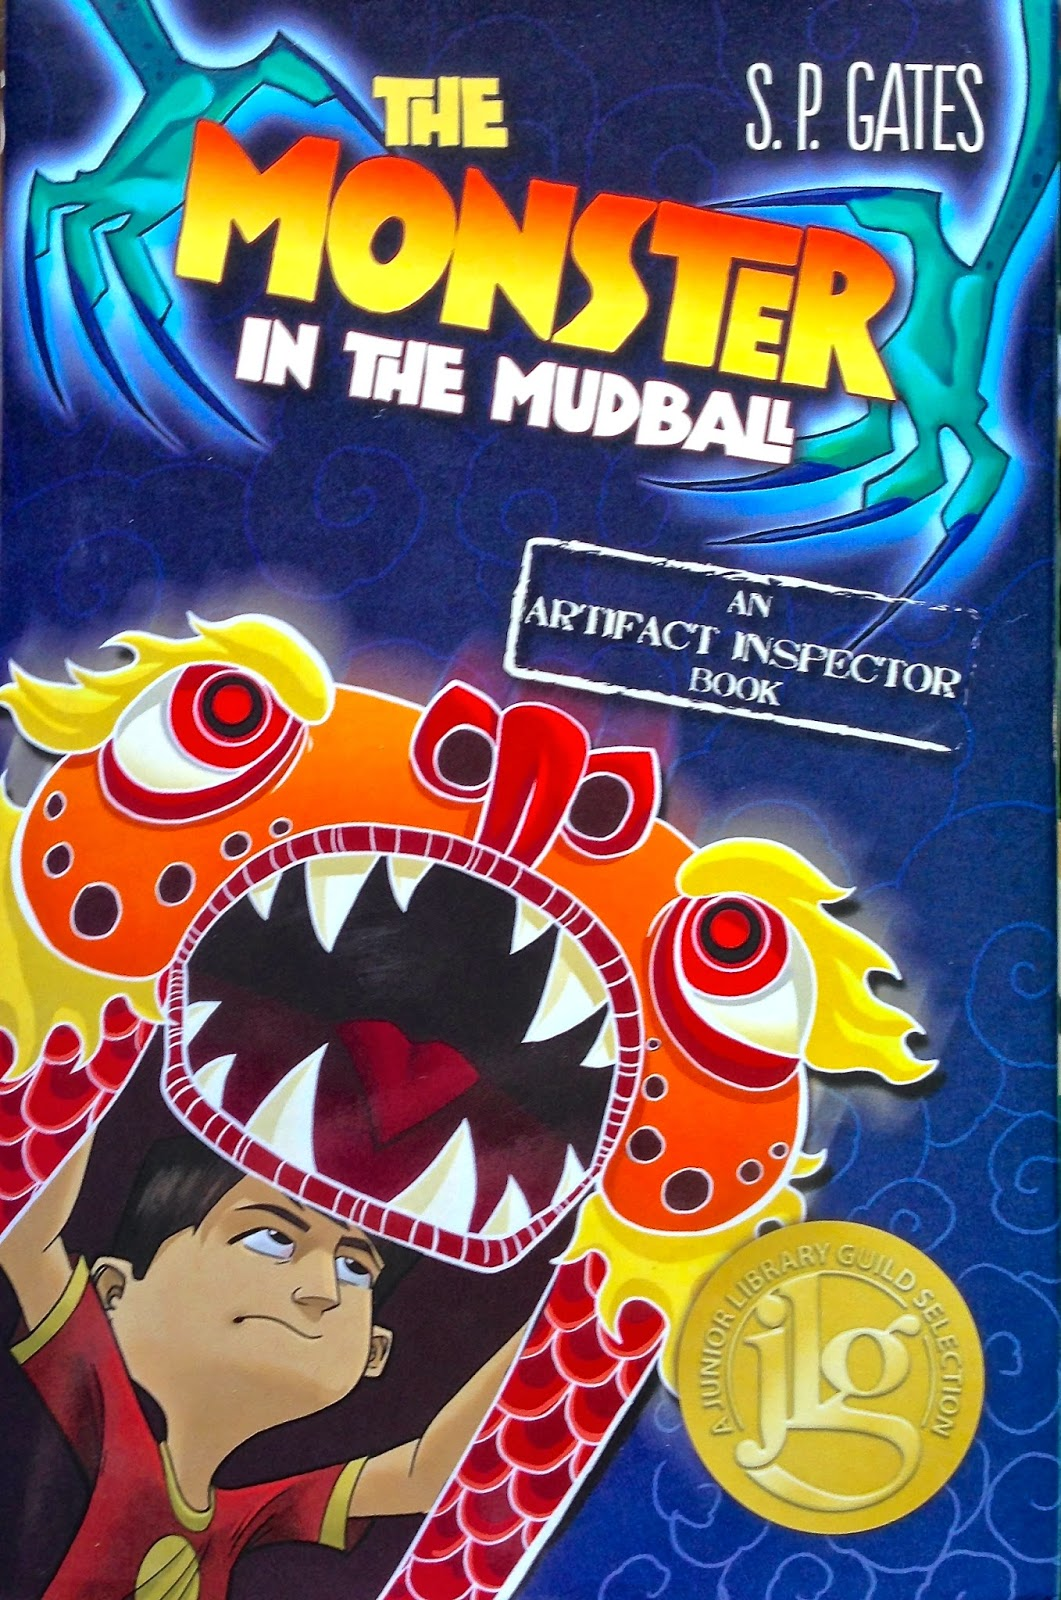 The Monster in the Mudball Book Review